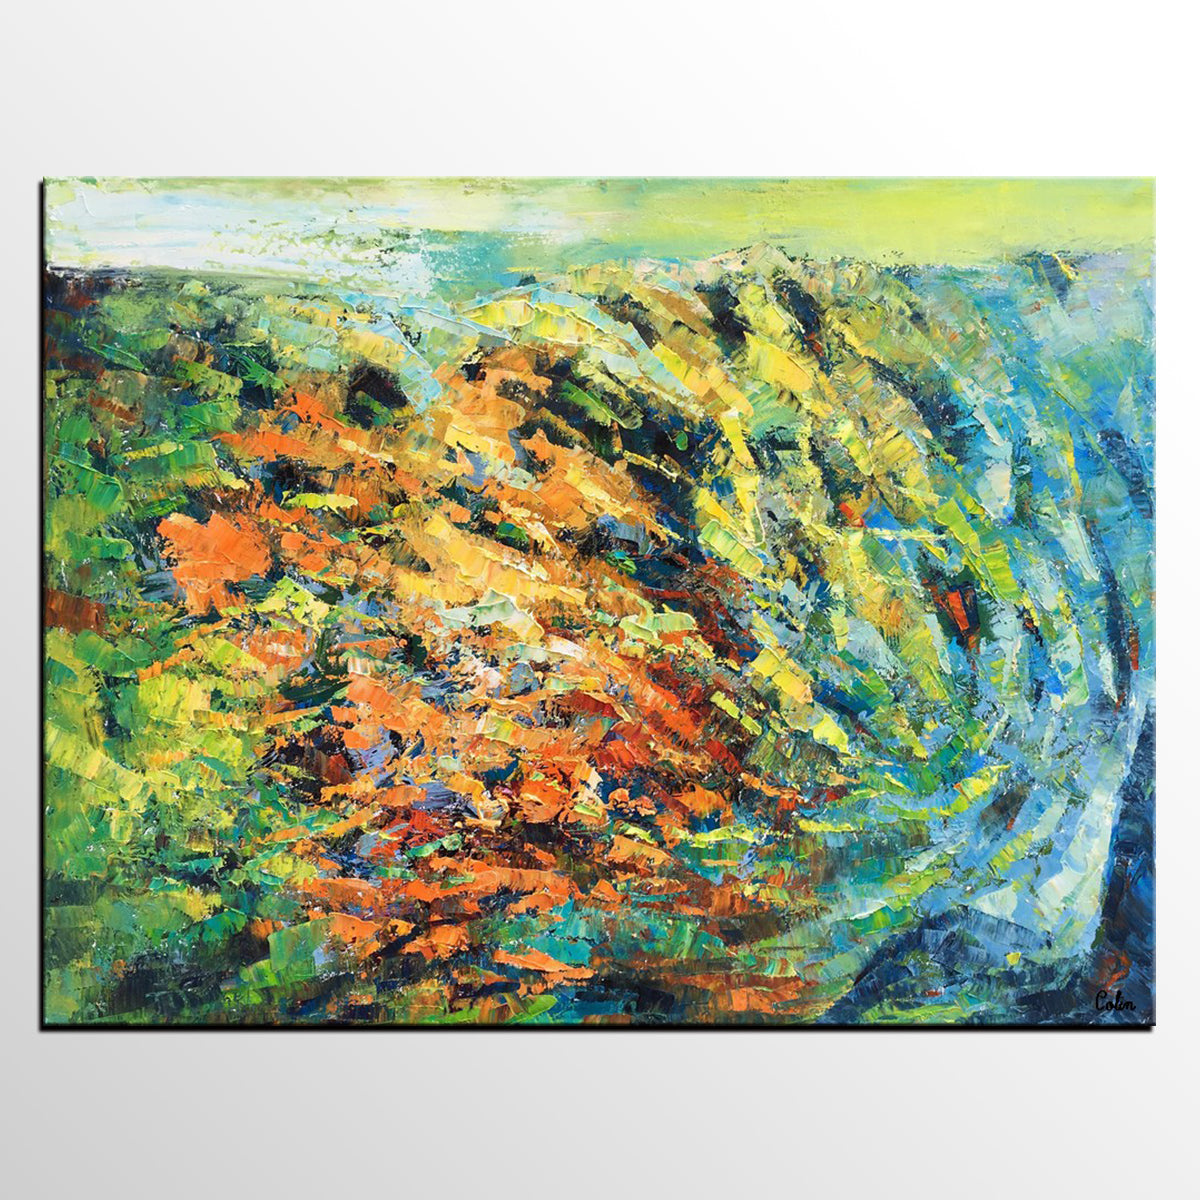 Canvas Art, Oil Painting, Living Room Wall Art, Abstract Landscape Painting